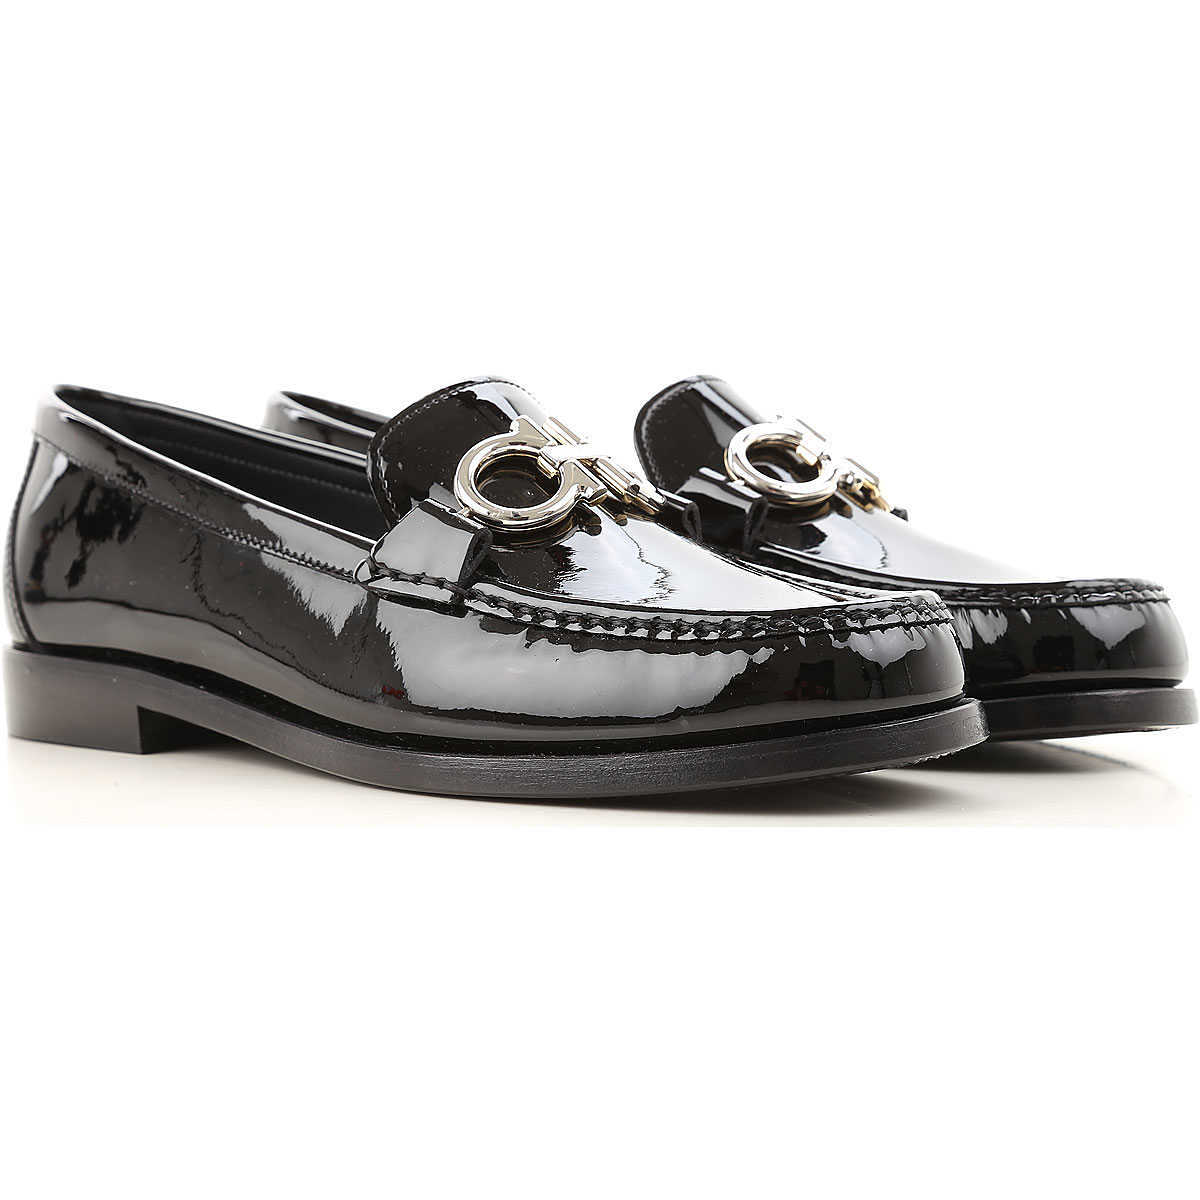 Salvatore Ferragamo Loafers for Women On Sale in Outlet Black - GOOFASH